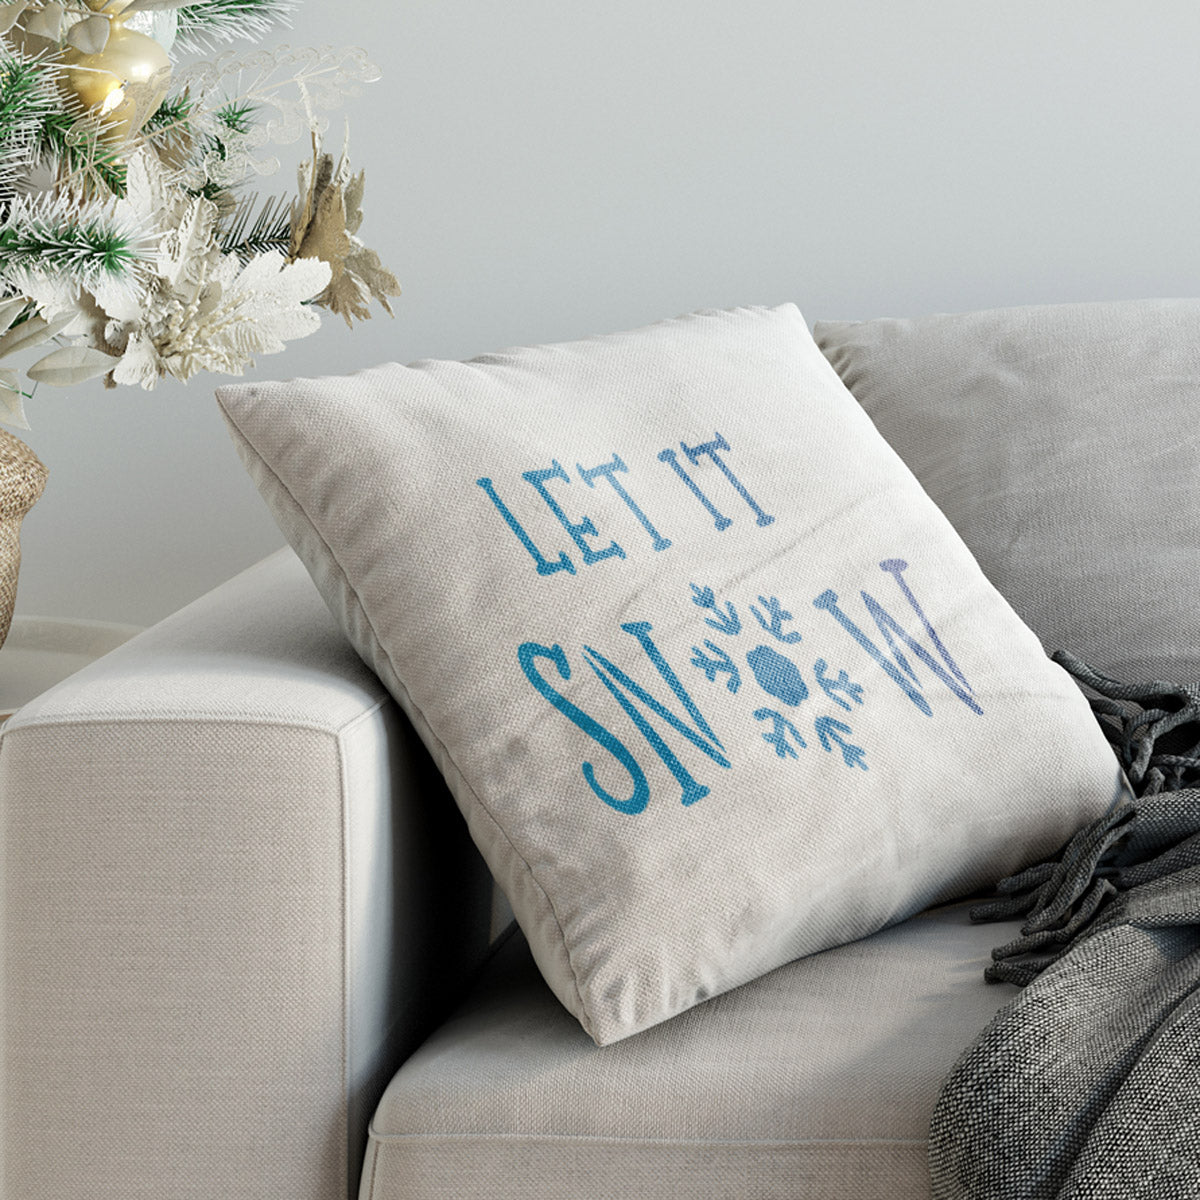 CraftStar Let It Snow Christmas Text Stencil on Fabric